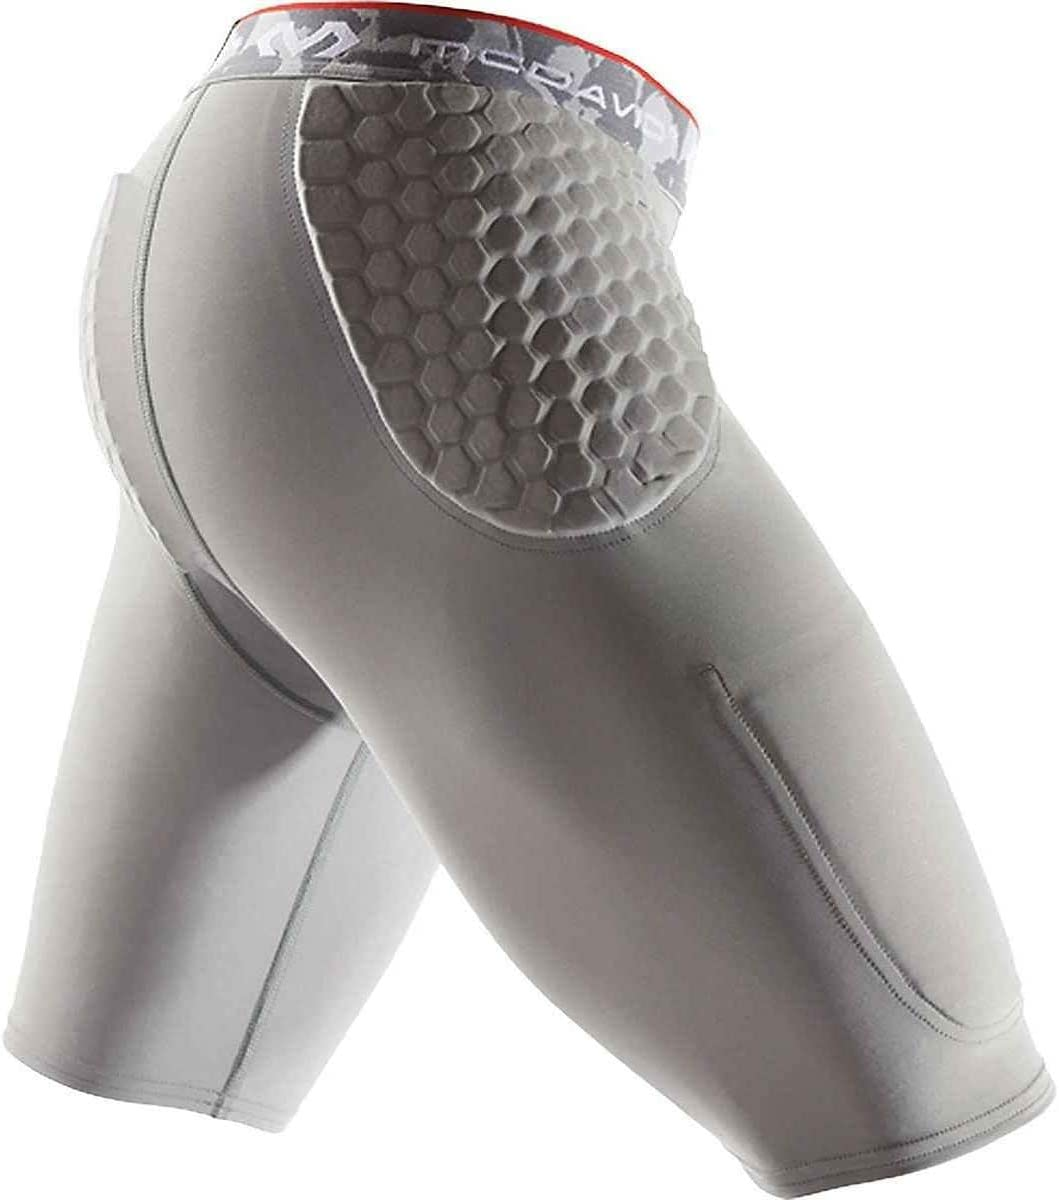 McDavid Basketball Padded Compression Recommendation Shorts 3 Ultra-Cheap Deals Girdle. HEX Pads